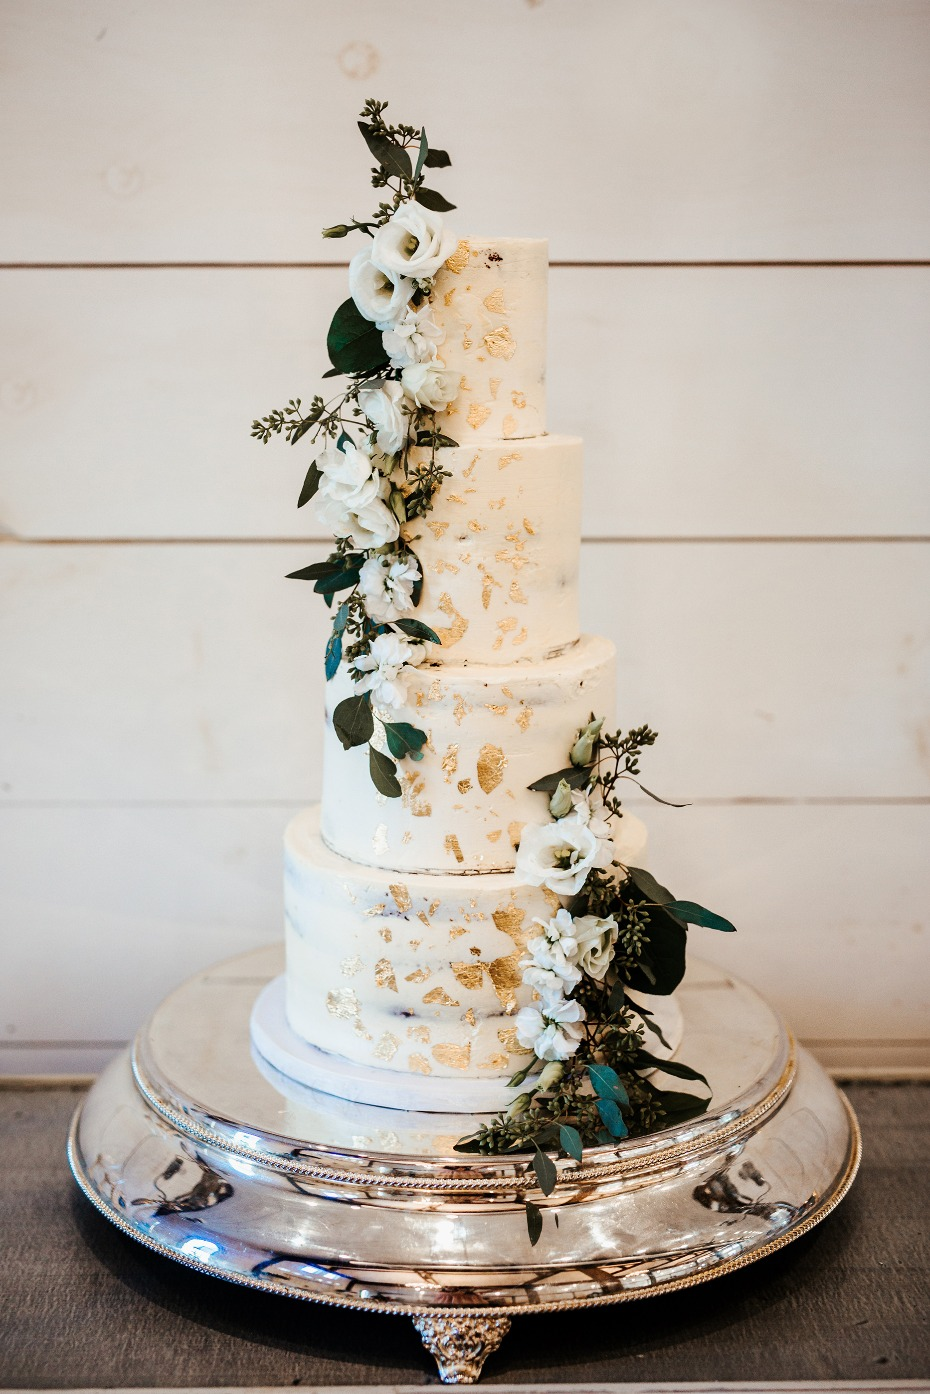 White and gold cake with white flowers